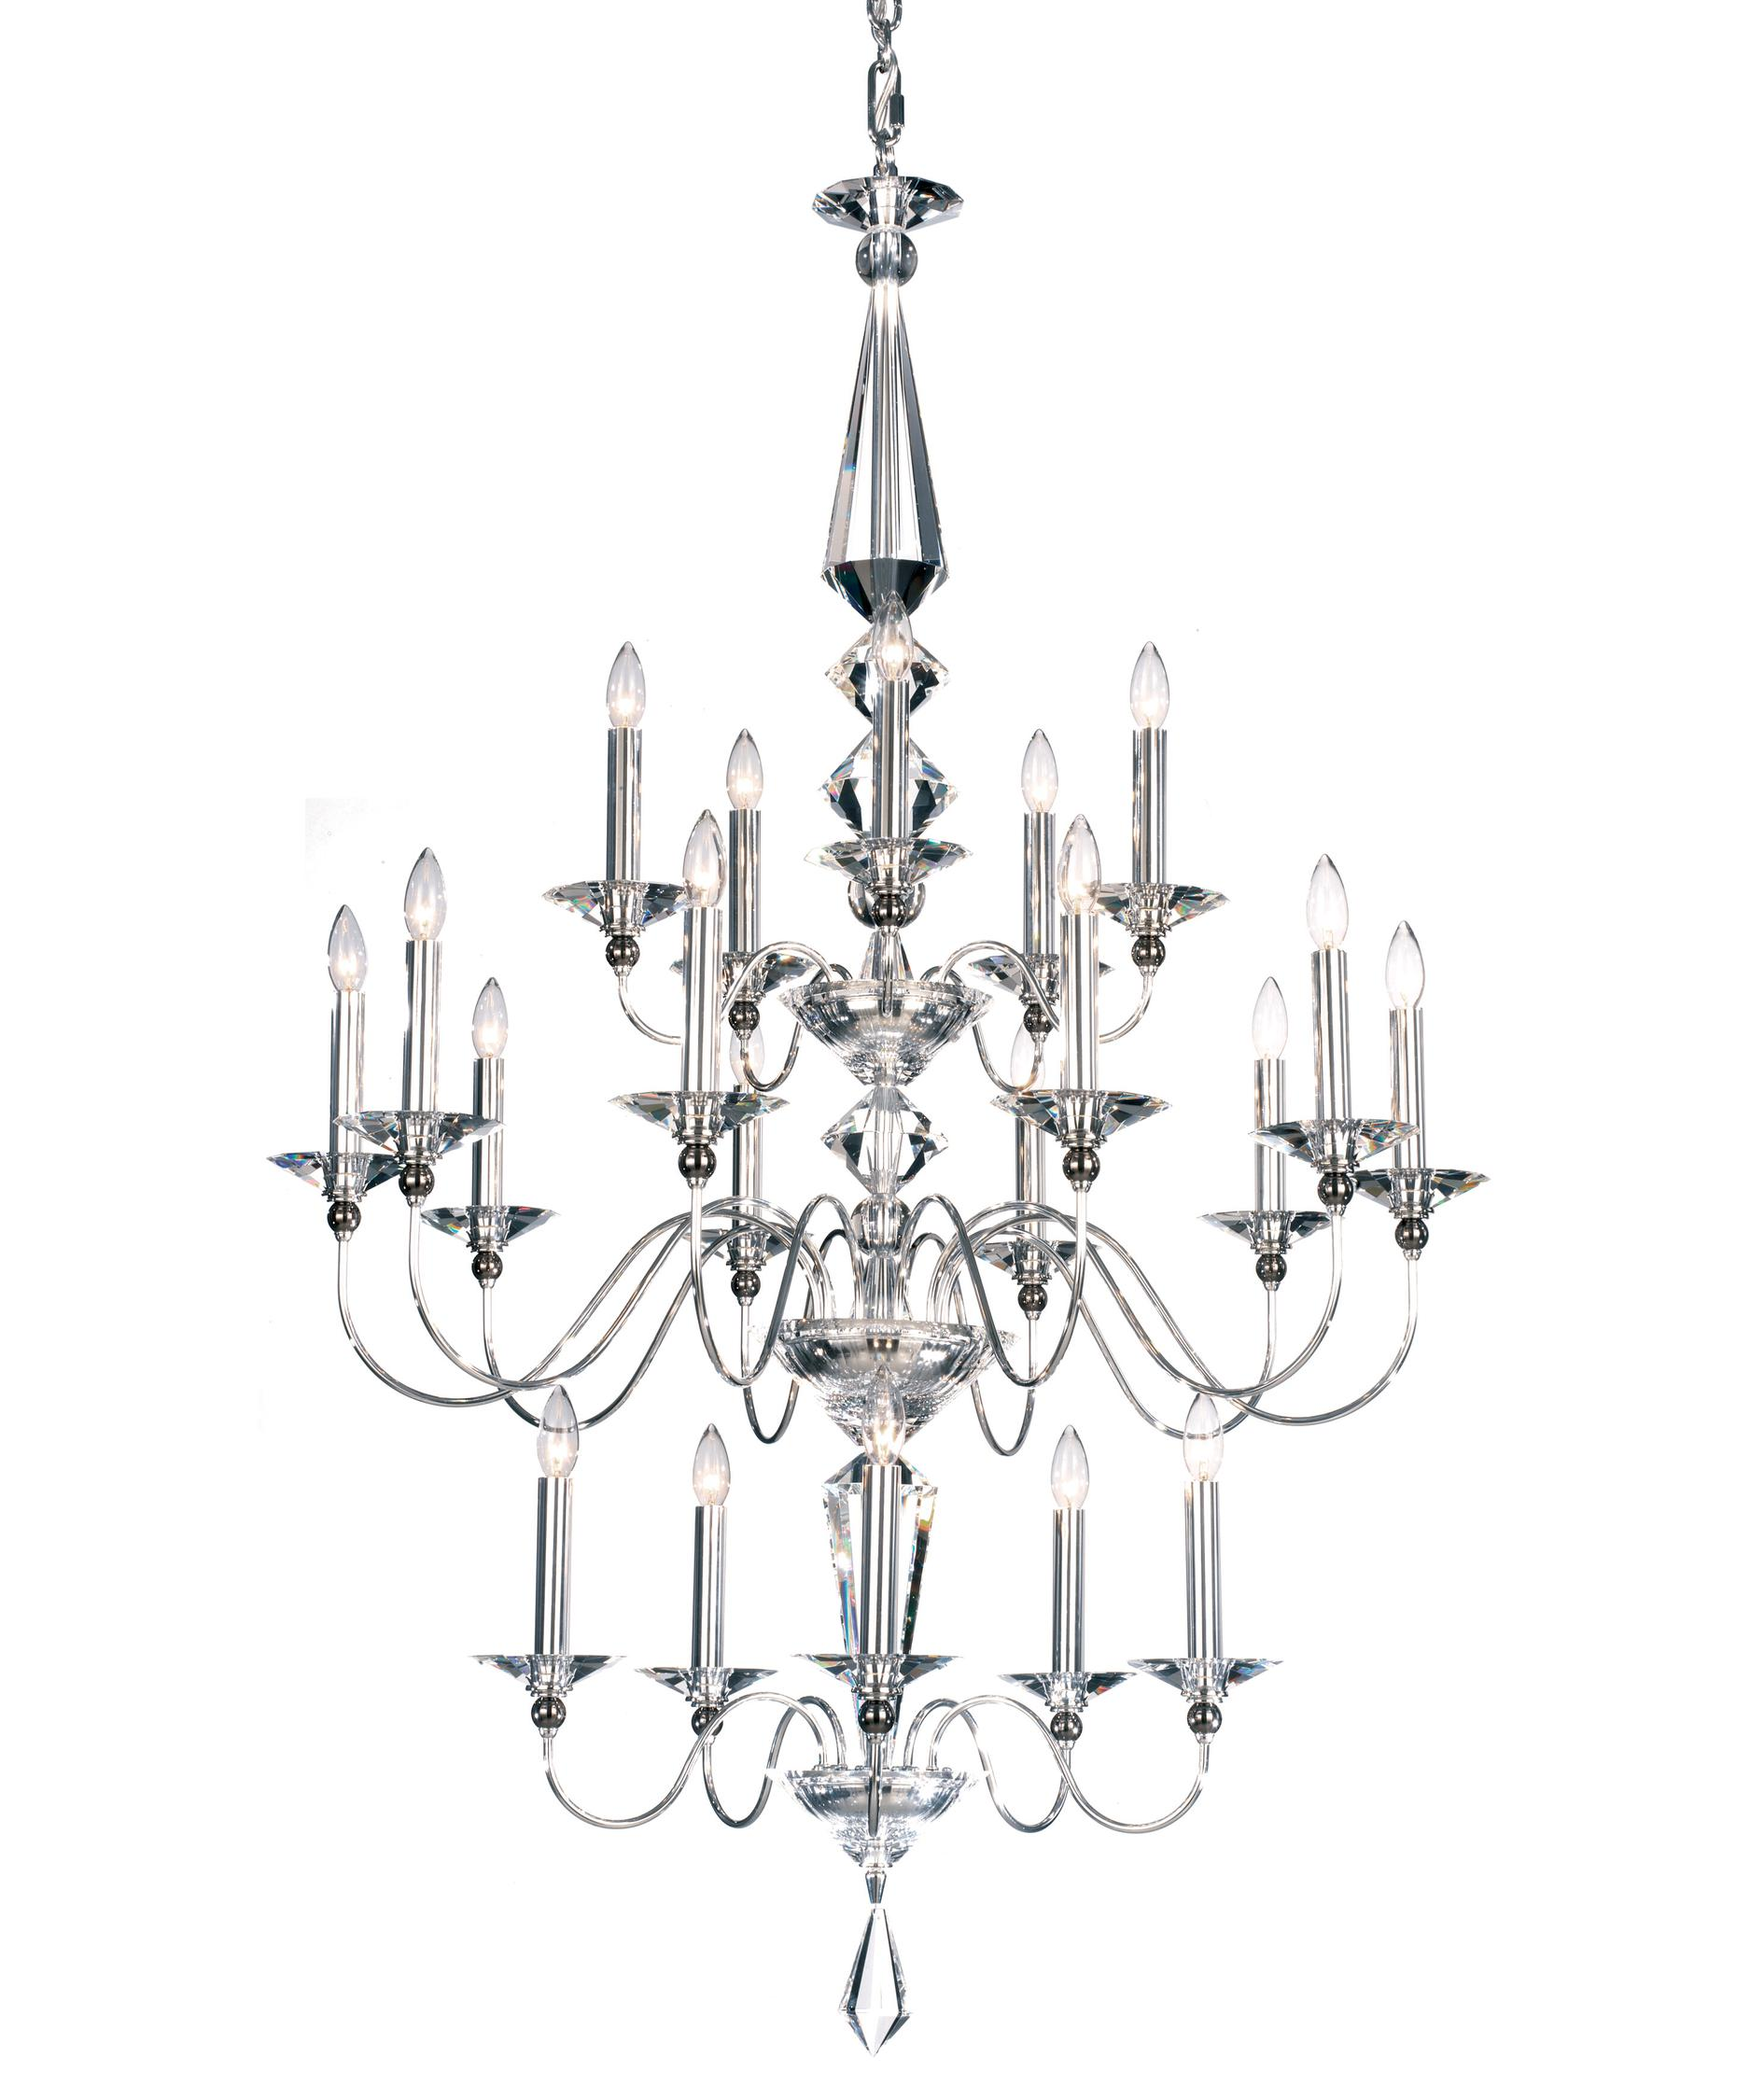 shown in silver finish and clear crystal - Schonbek